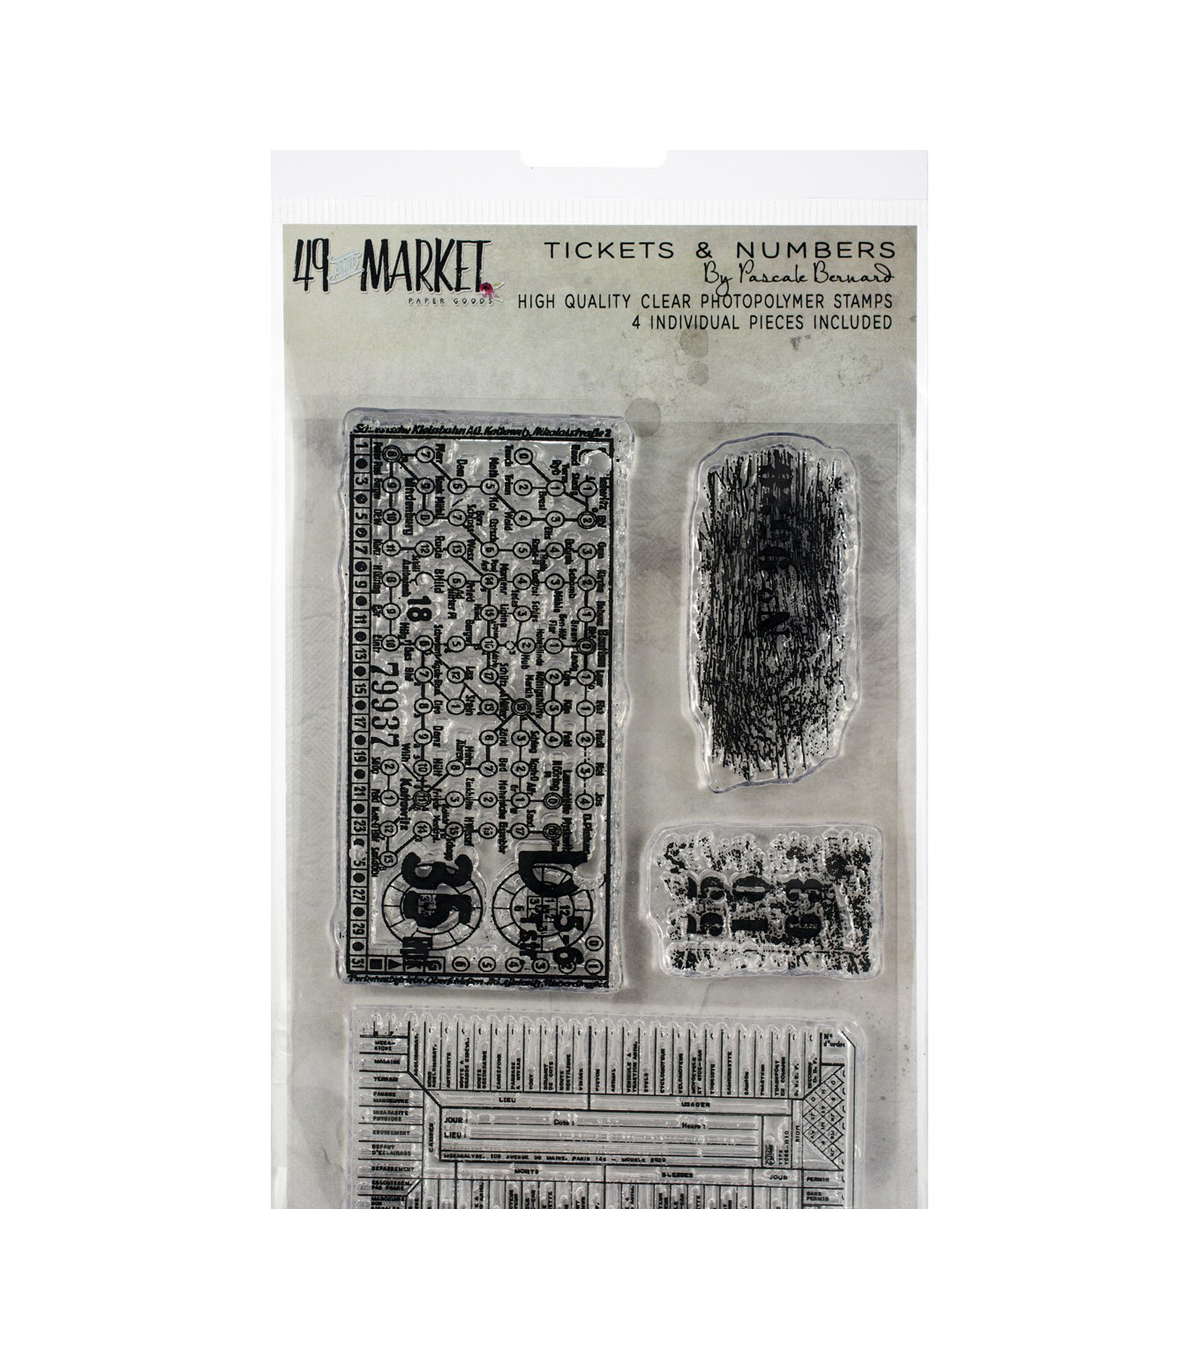 49 And Market 4 pk Clear Stamps-Pascale\u0027s Tickets & Numbers